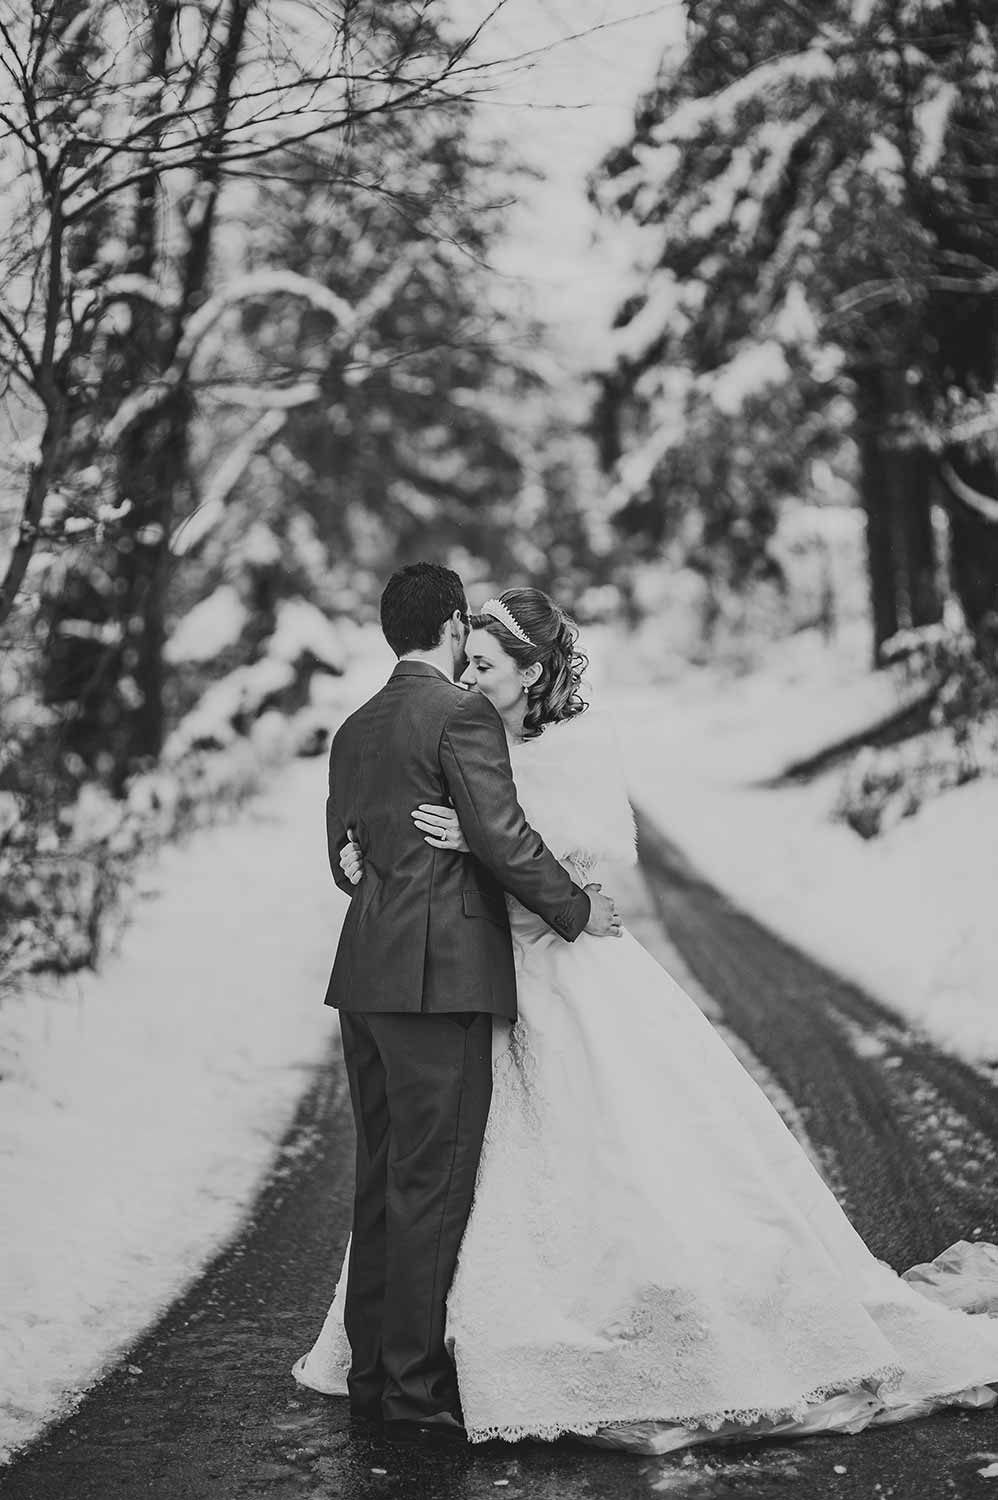 wheelersburg-ohio-winter-snow-wedding-portrait.jpg